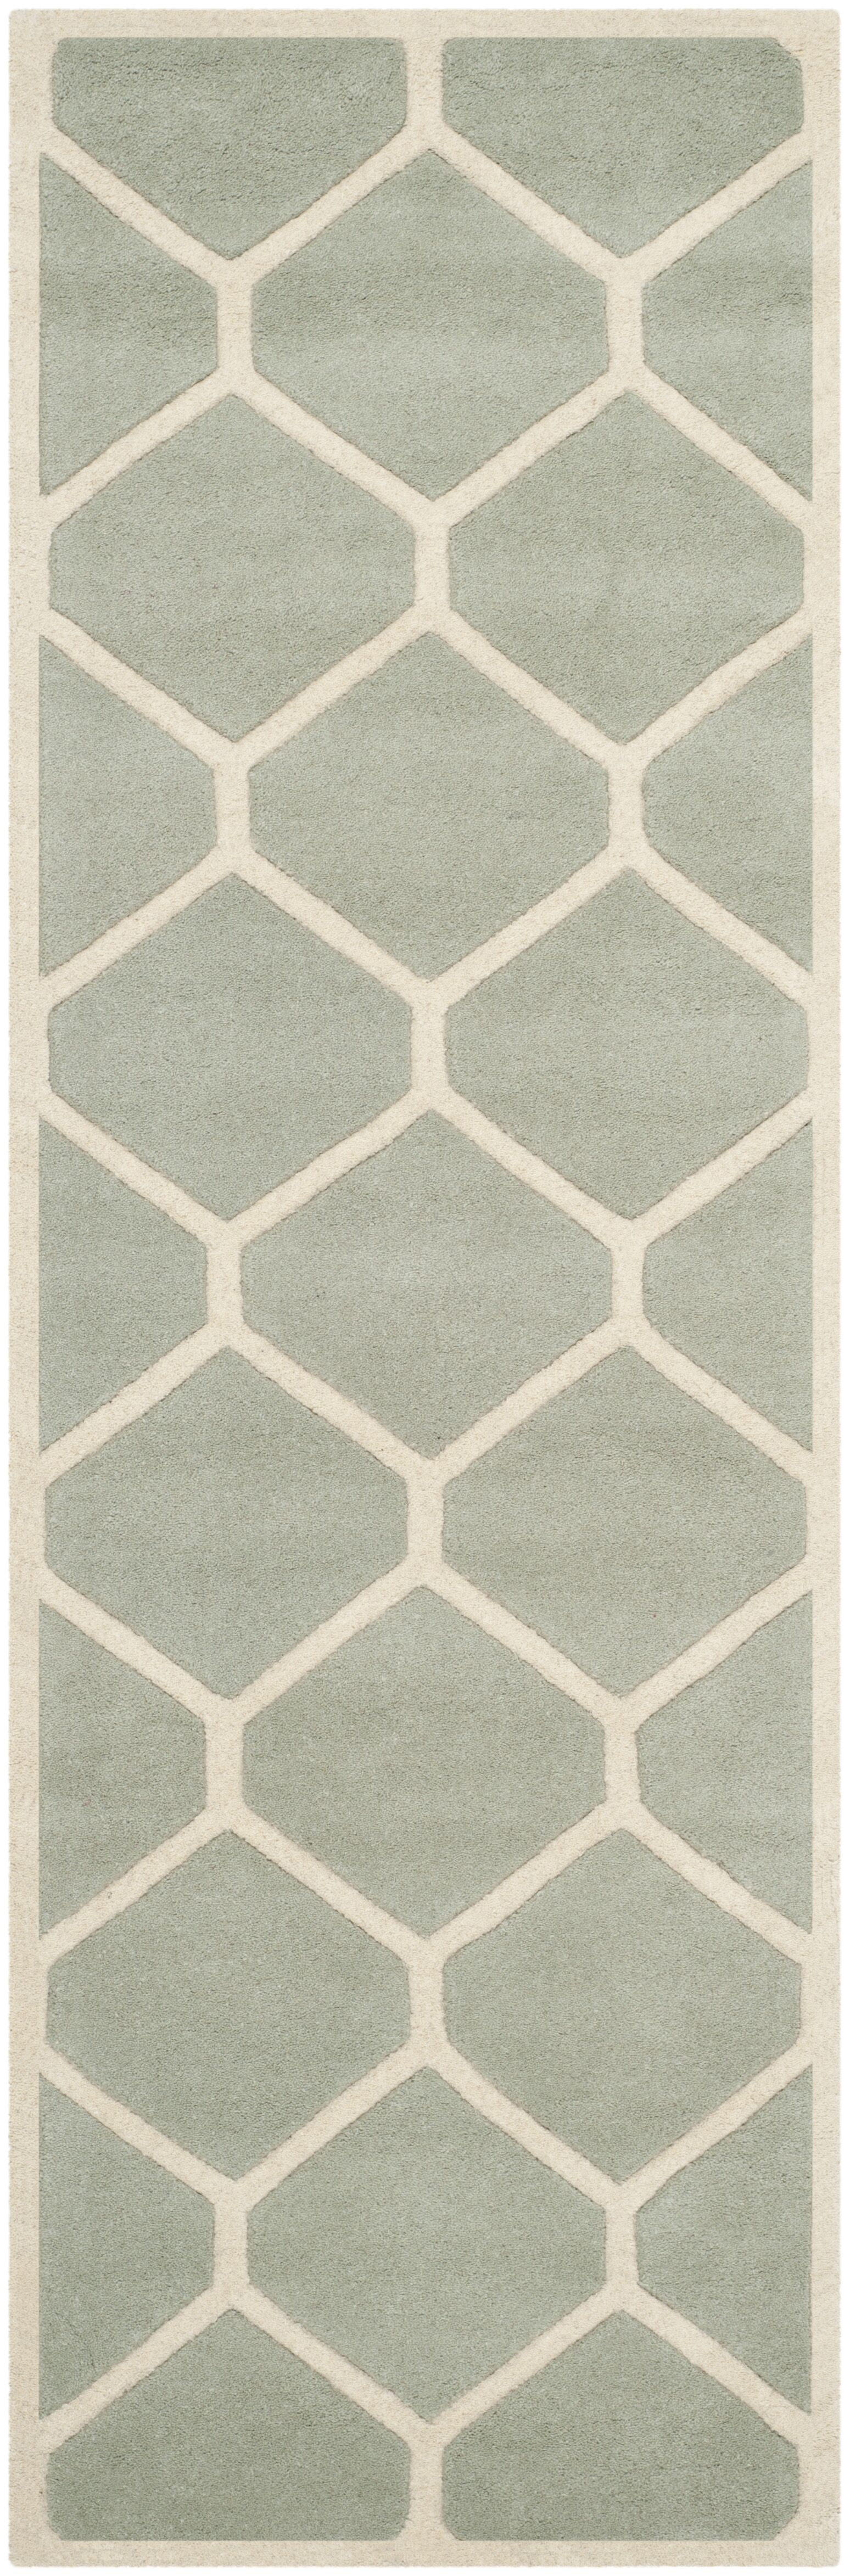 Wilkin Hand-Tufted Wool Gray/Ivory Area Rug Rug Size: Runner 2'3